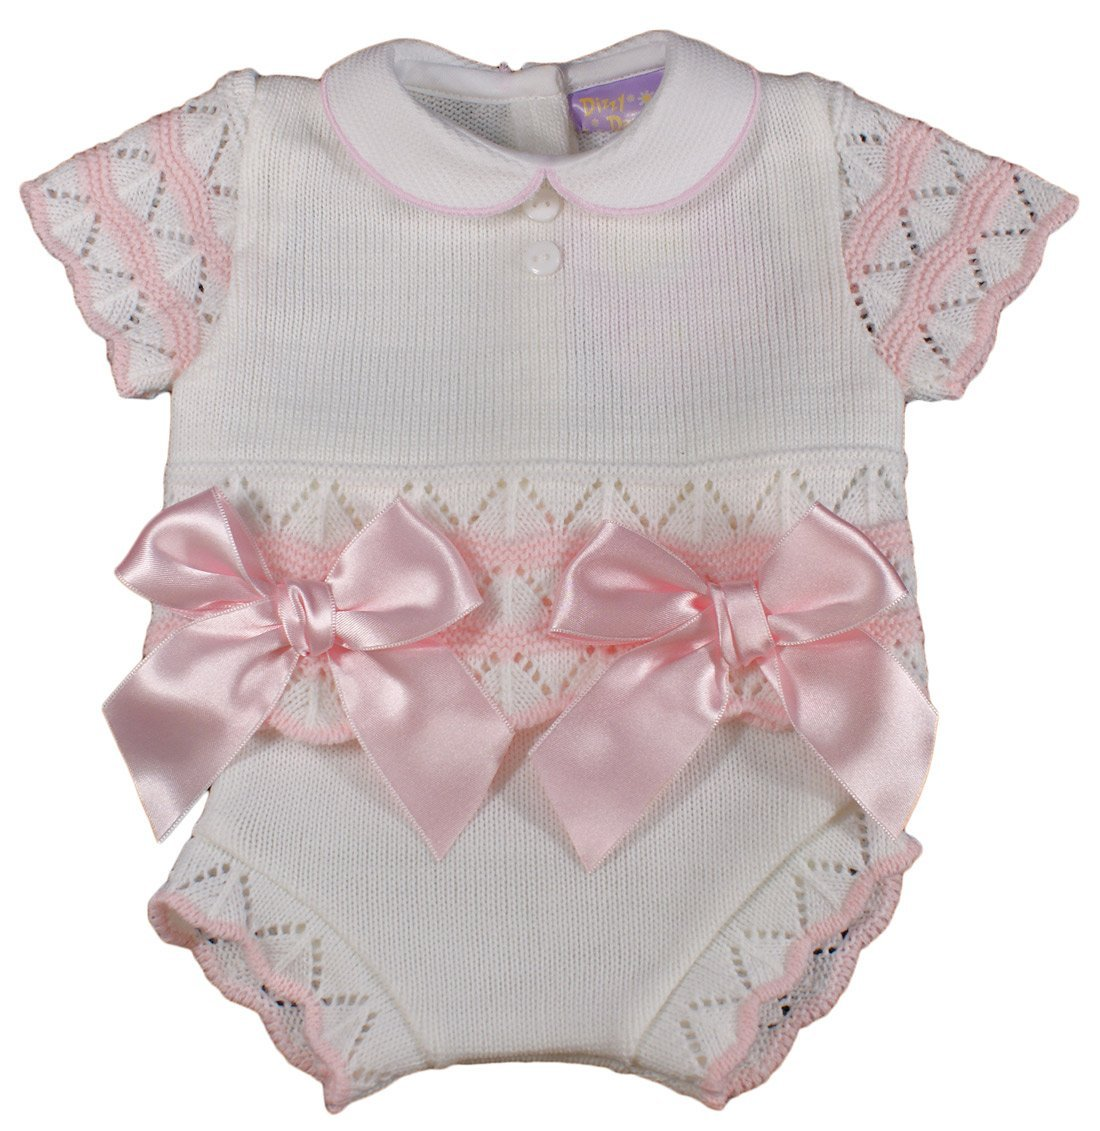 55b3e4cff Baby Girl Bows Spanish Knitted Summer Outfit jam Pants Knickers top 3-6  Months Pink: Amazon.co.uk: Baby